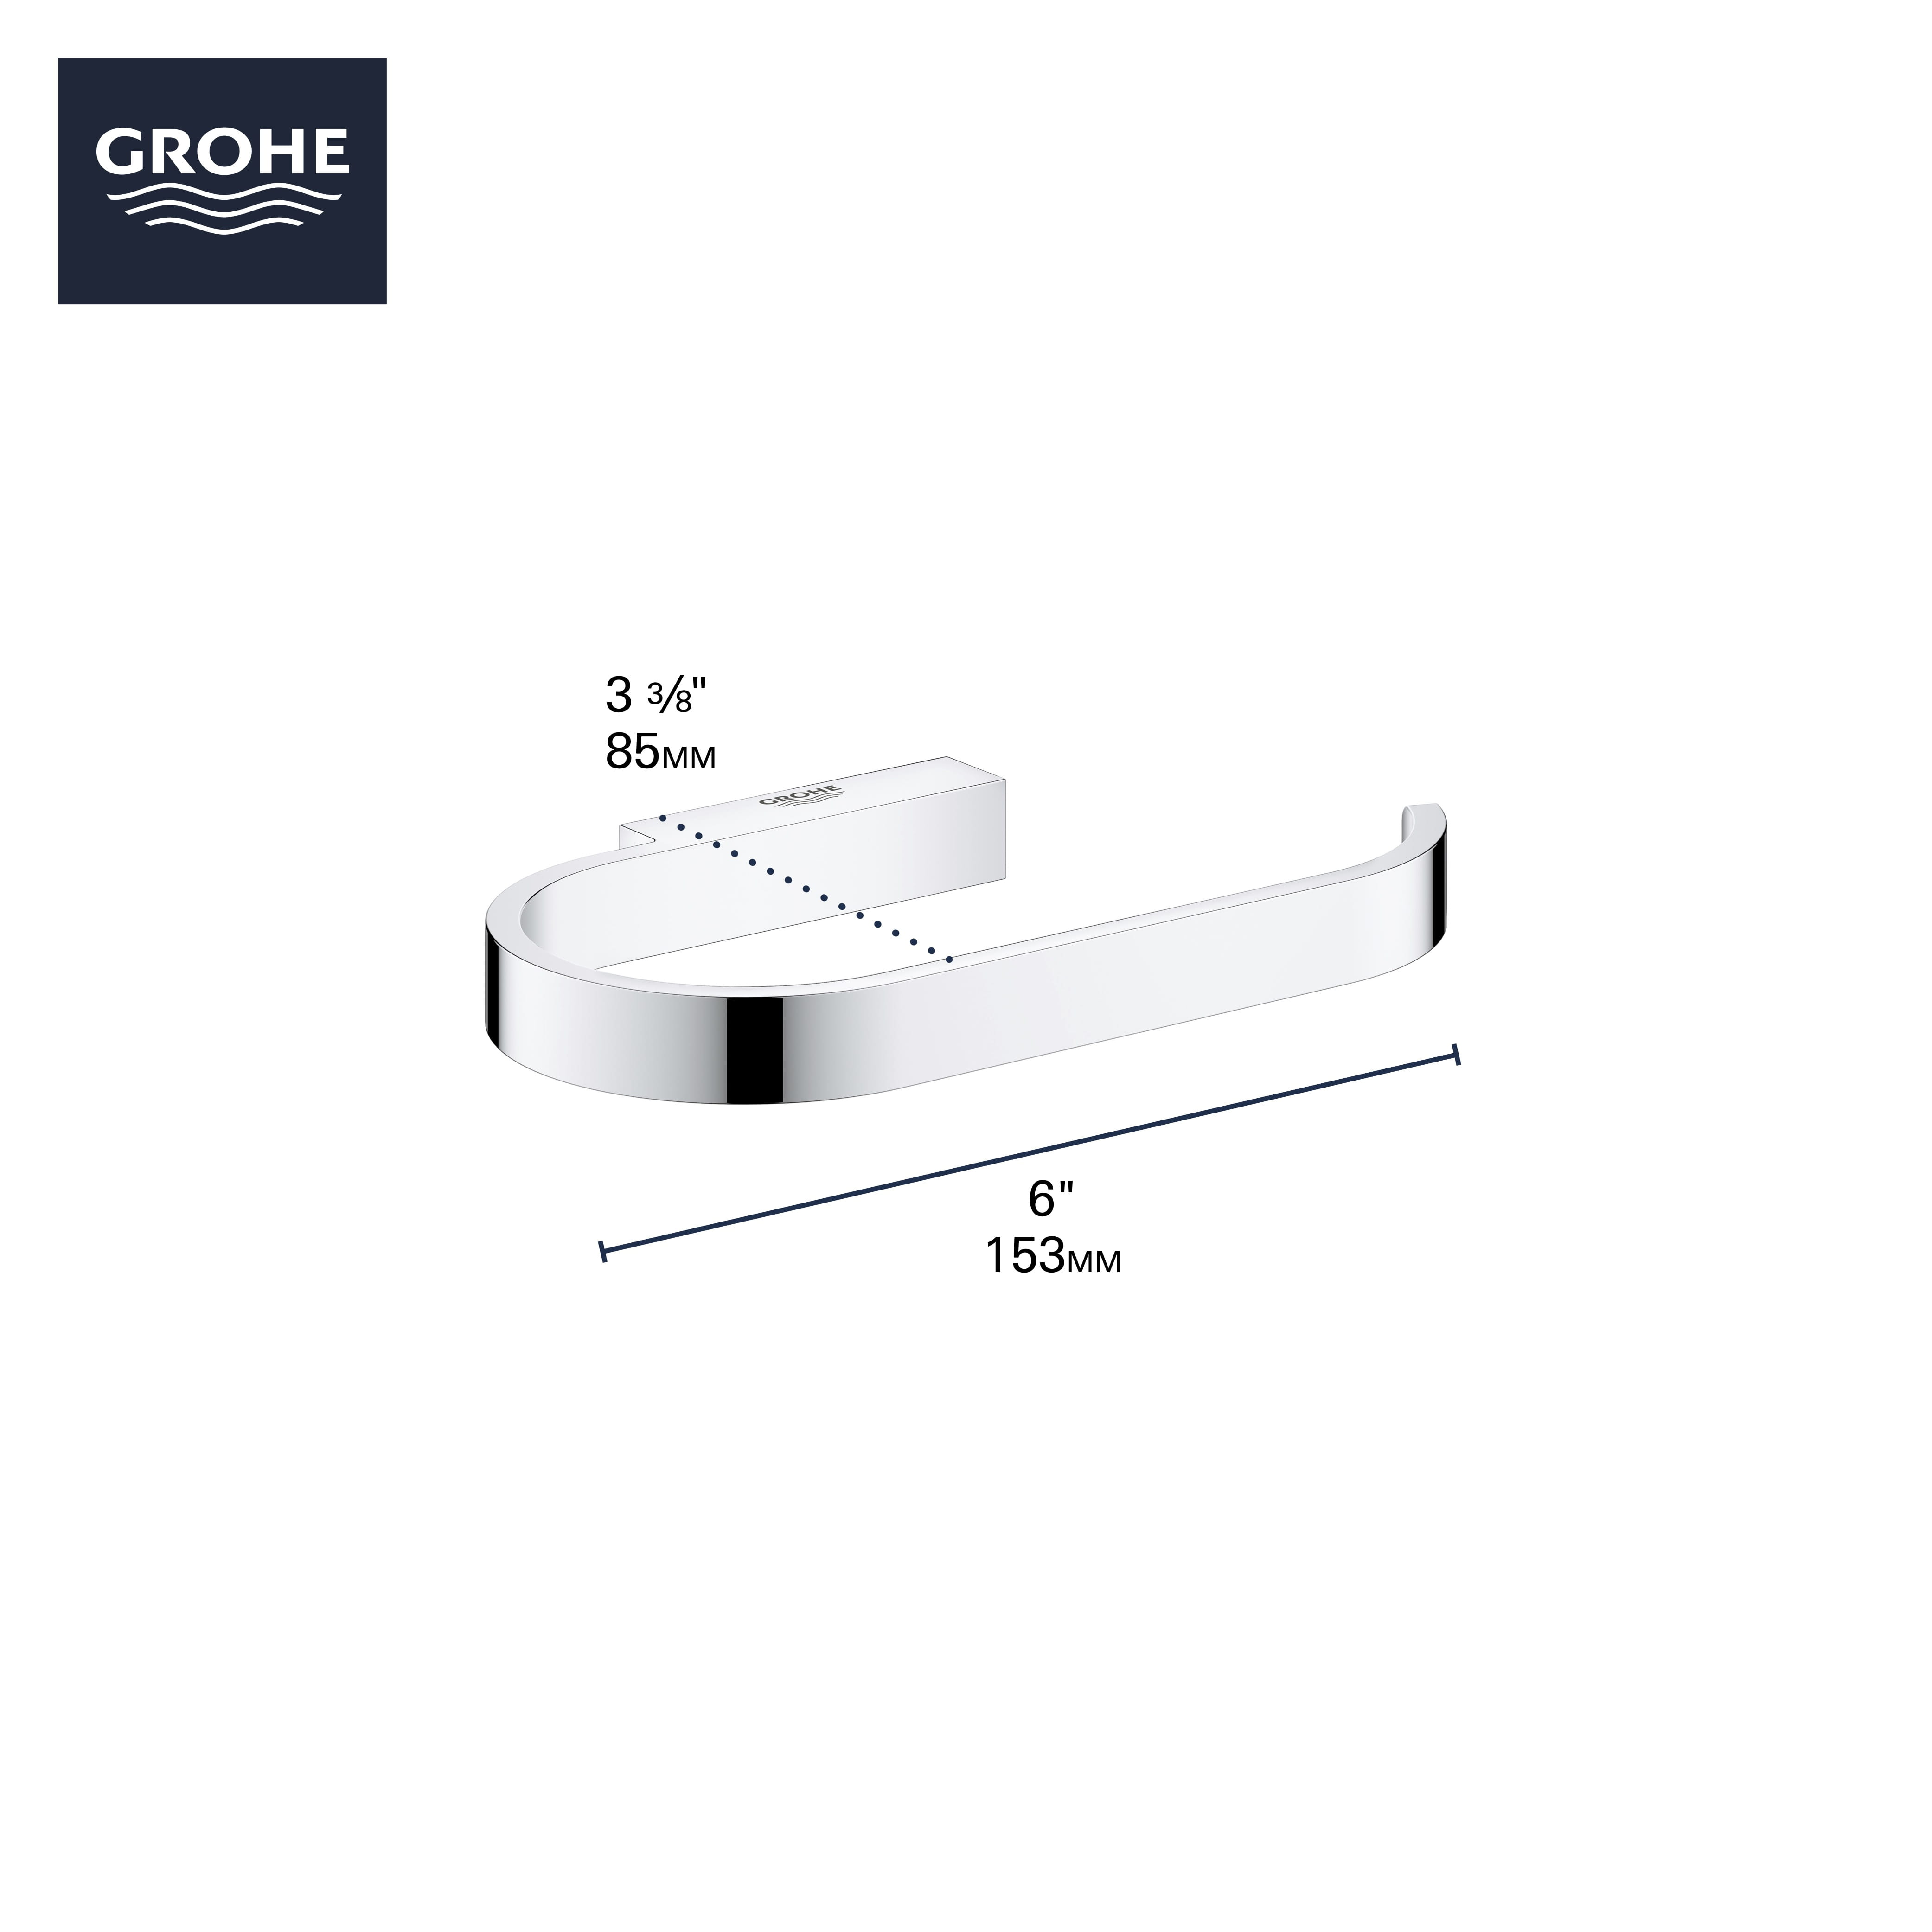 Paper Holder w o Cover GROHE BRUSHED COOL SUNRISE